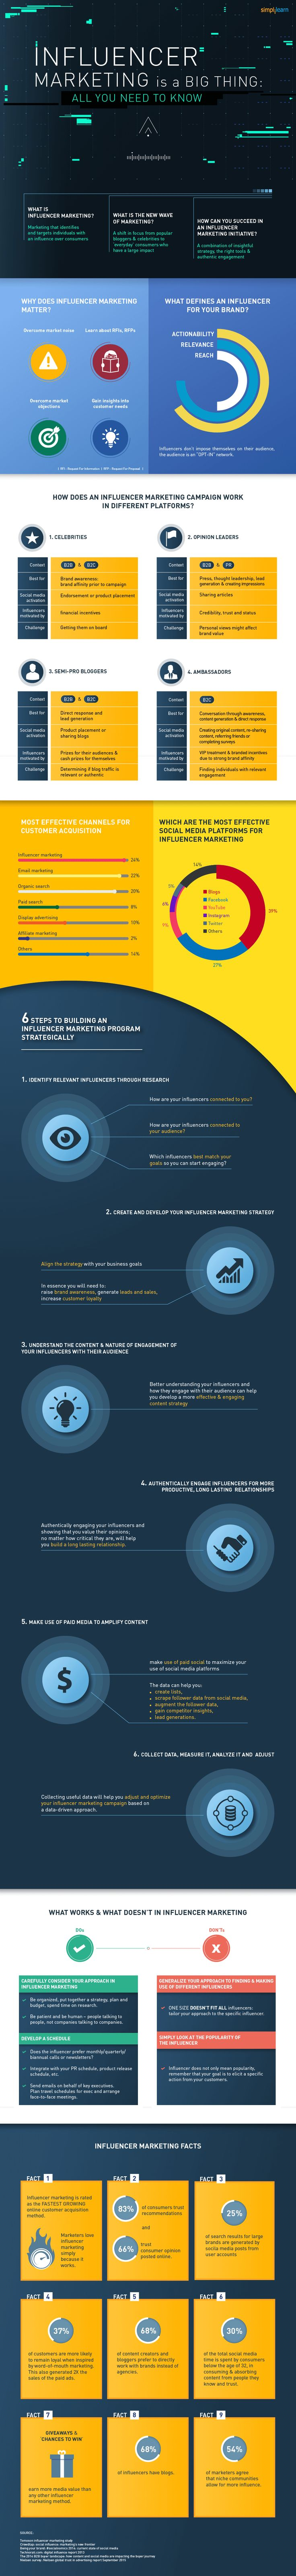 Influencer Marketing is a Big Thing All you Need to Know #infographic #Marketing #InfluencerMarketing